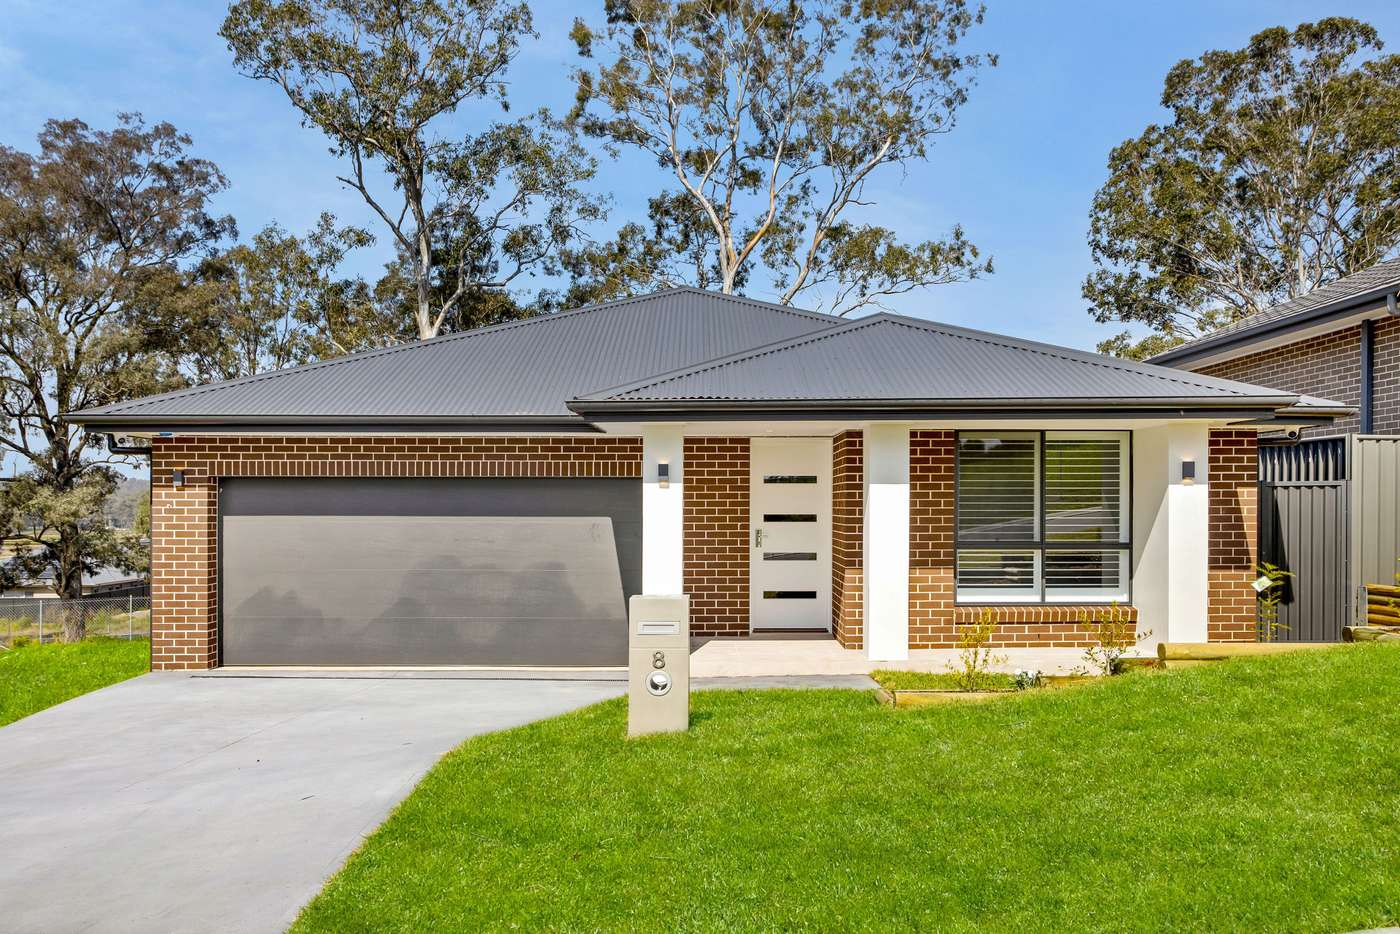 Main view of Homely house listing, 8 Homestead Lane, Riverstone NSW 2765